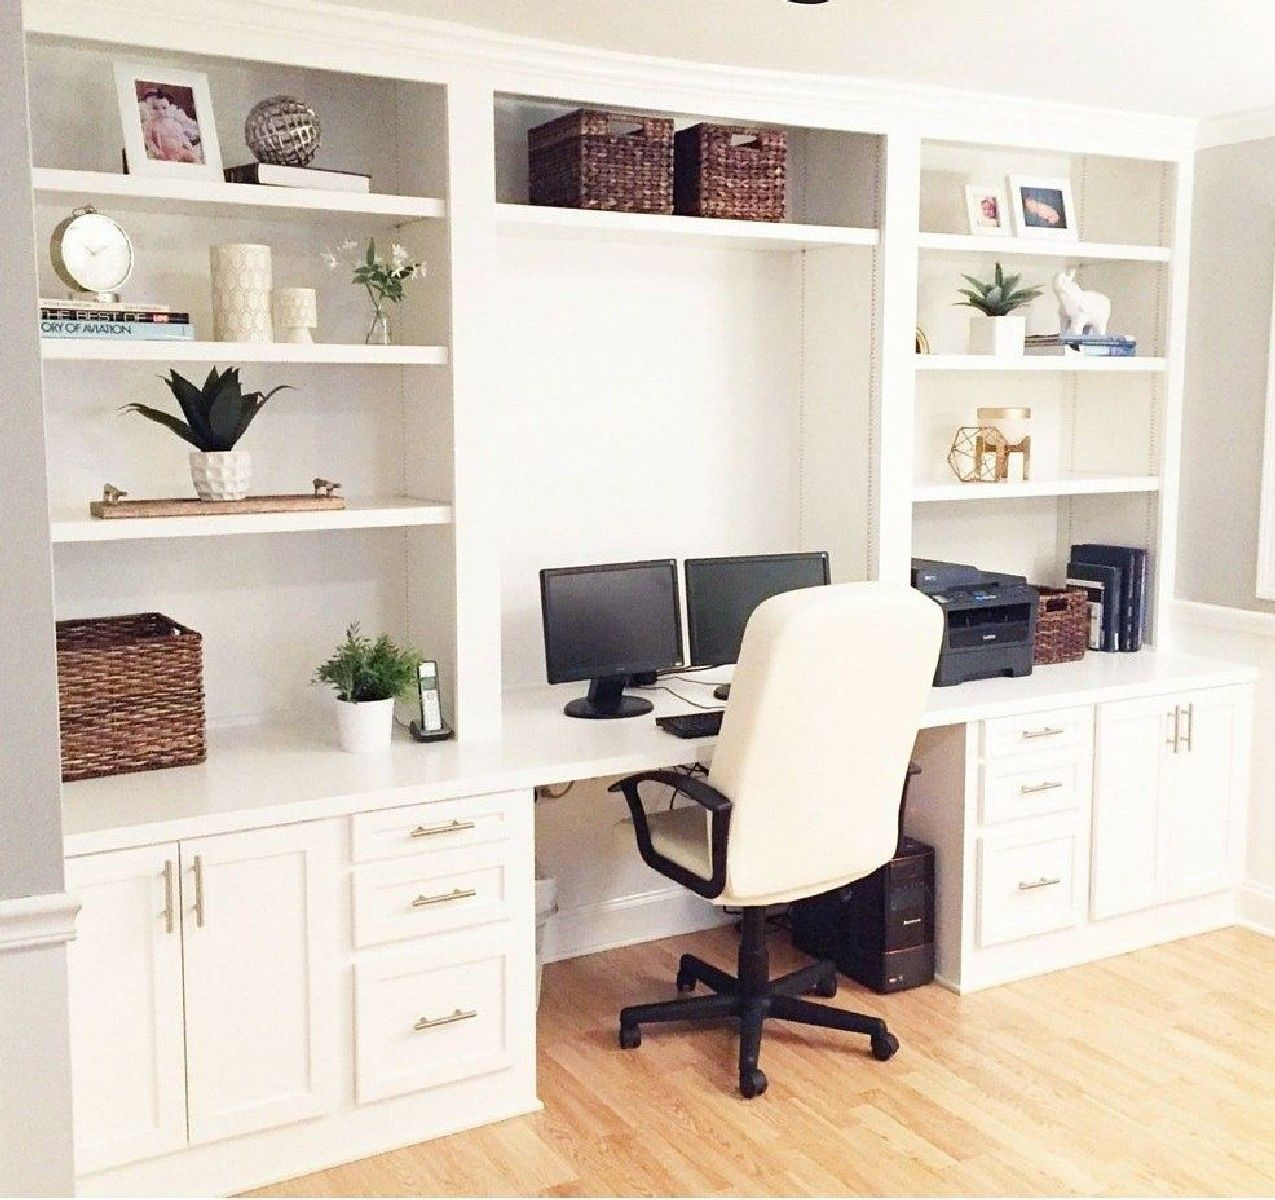 Best 24 Home Office Built In Cabinet Design Ideas to Maximize Small ...